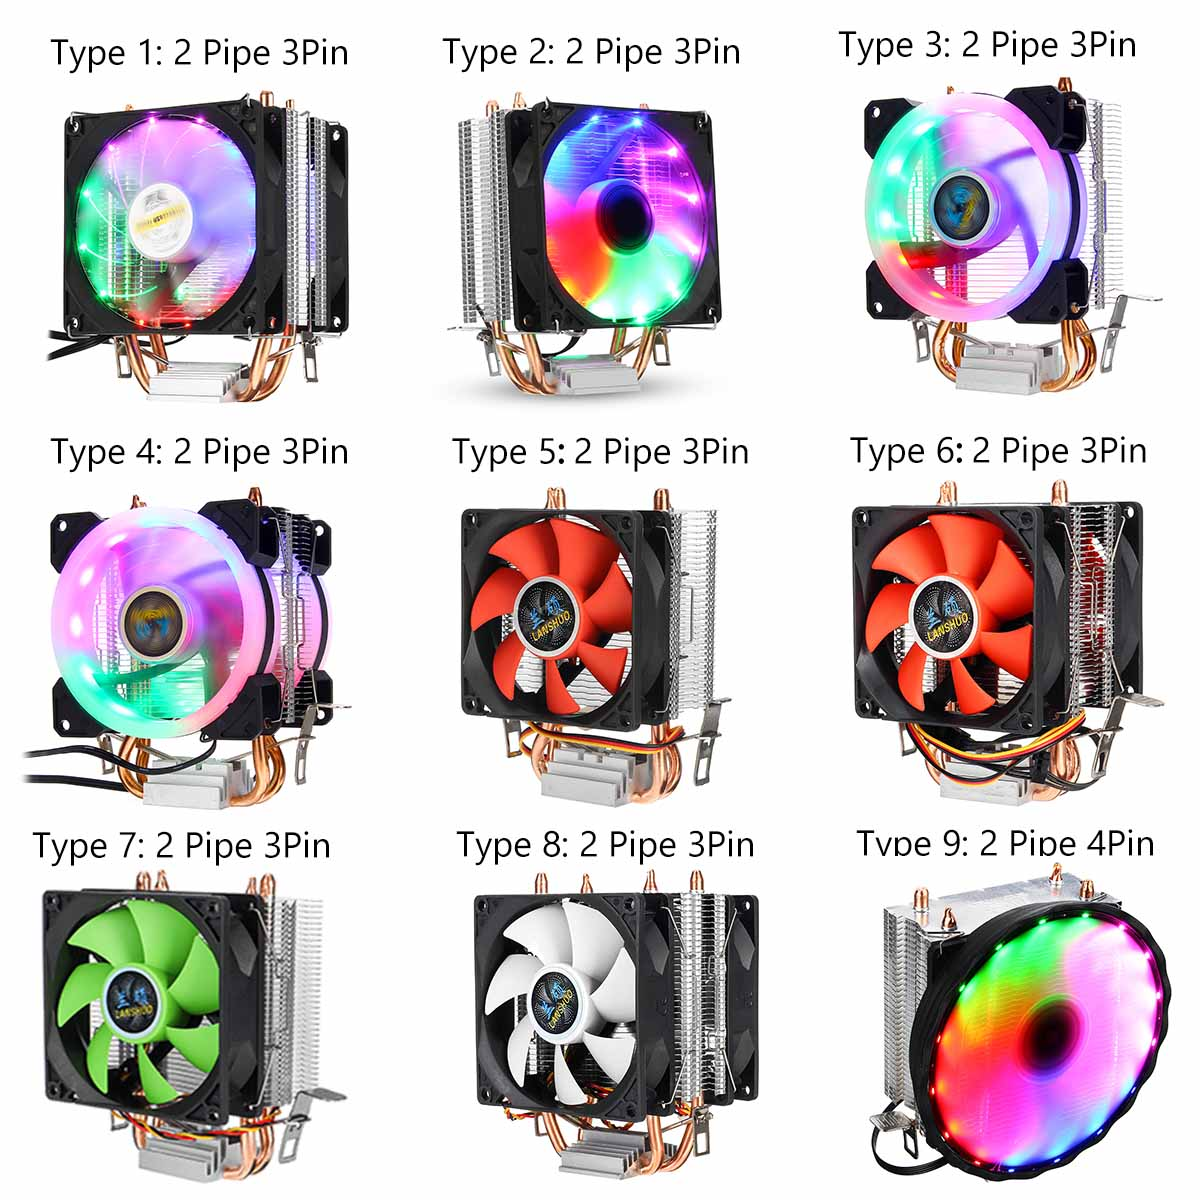 DC 12V 3/4Pin CPU Cooler Fan Colorful Backlight 90mm CPU Cooling Fan PC Heatsink Cooler for Intel/AMD For PC Computer Case Fan image